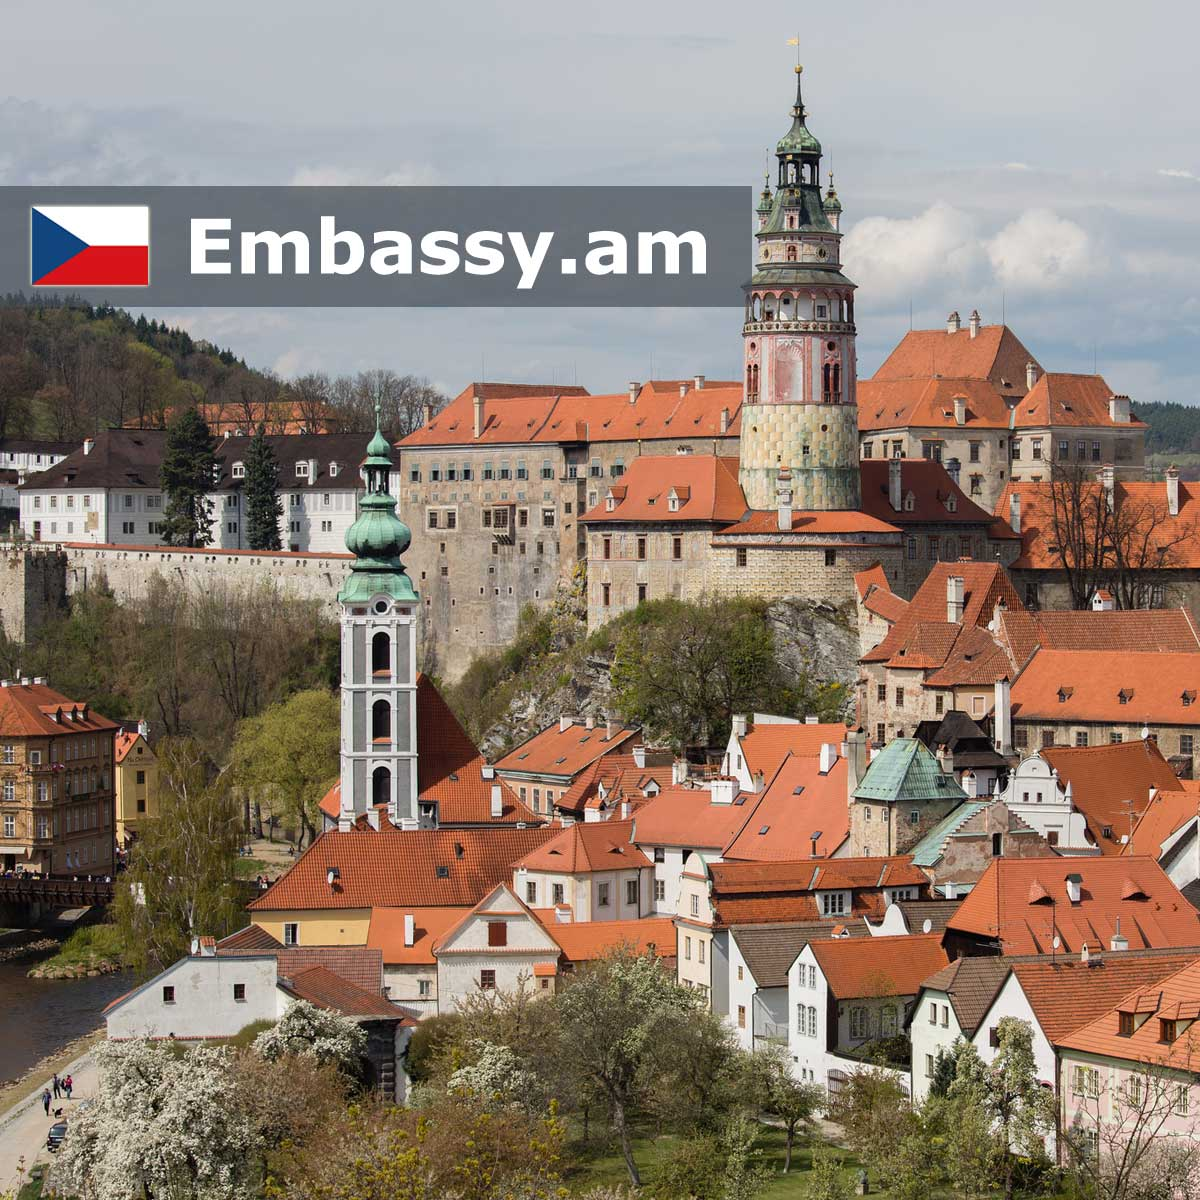 Cesky Krumlov - Hotels in the Czech Republic - Embassy.am